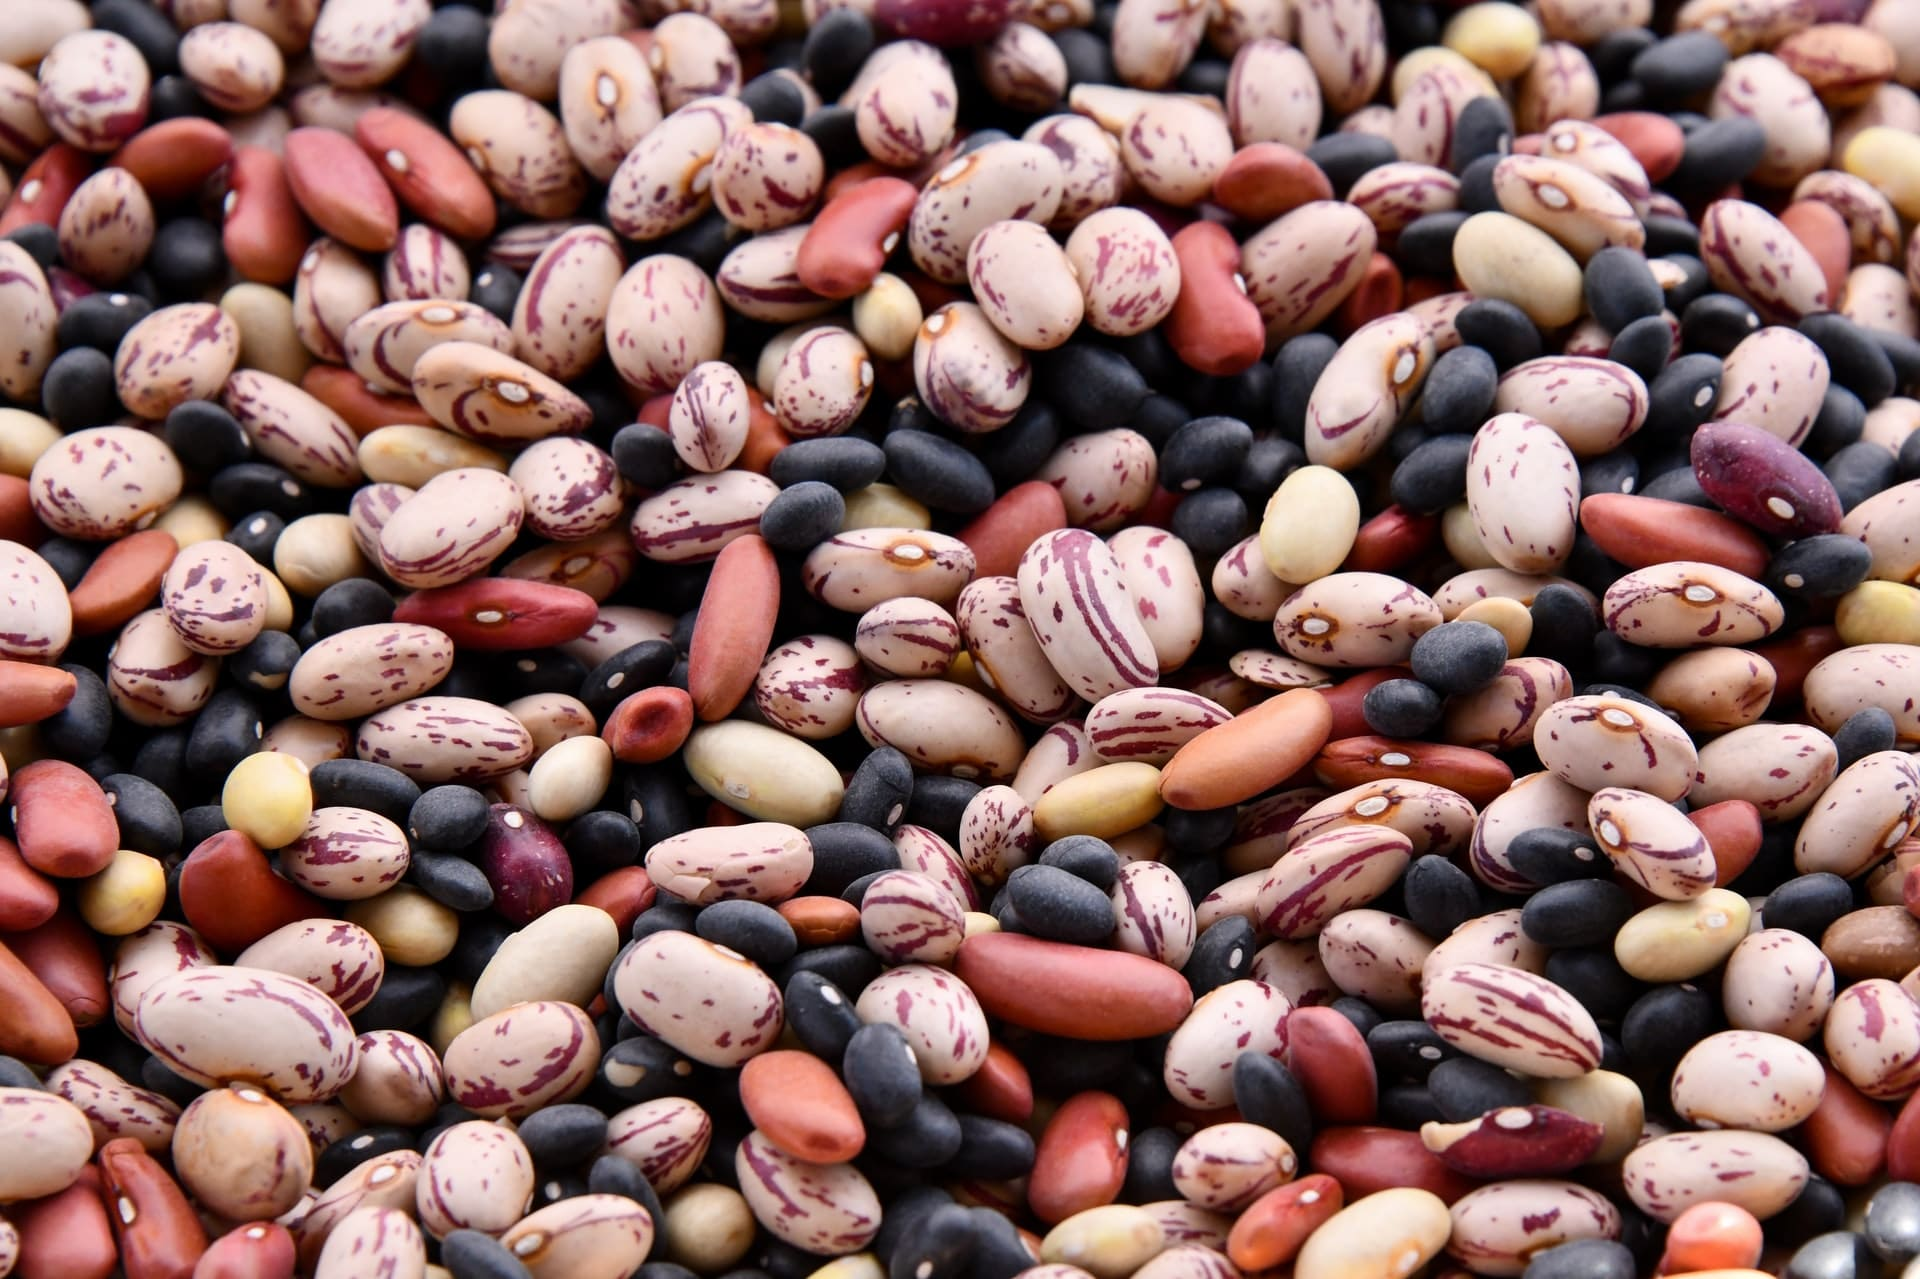 legumes count as complex carbs for sleep